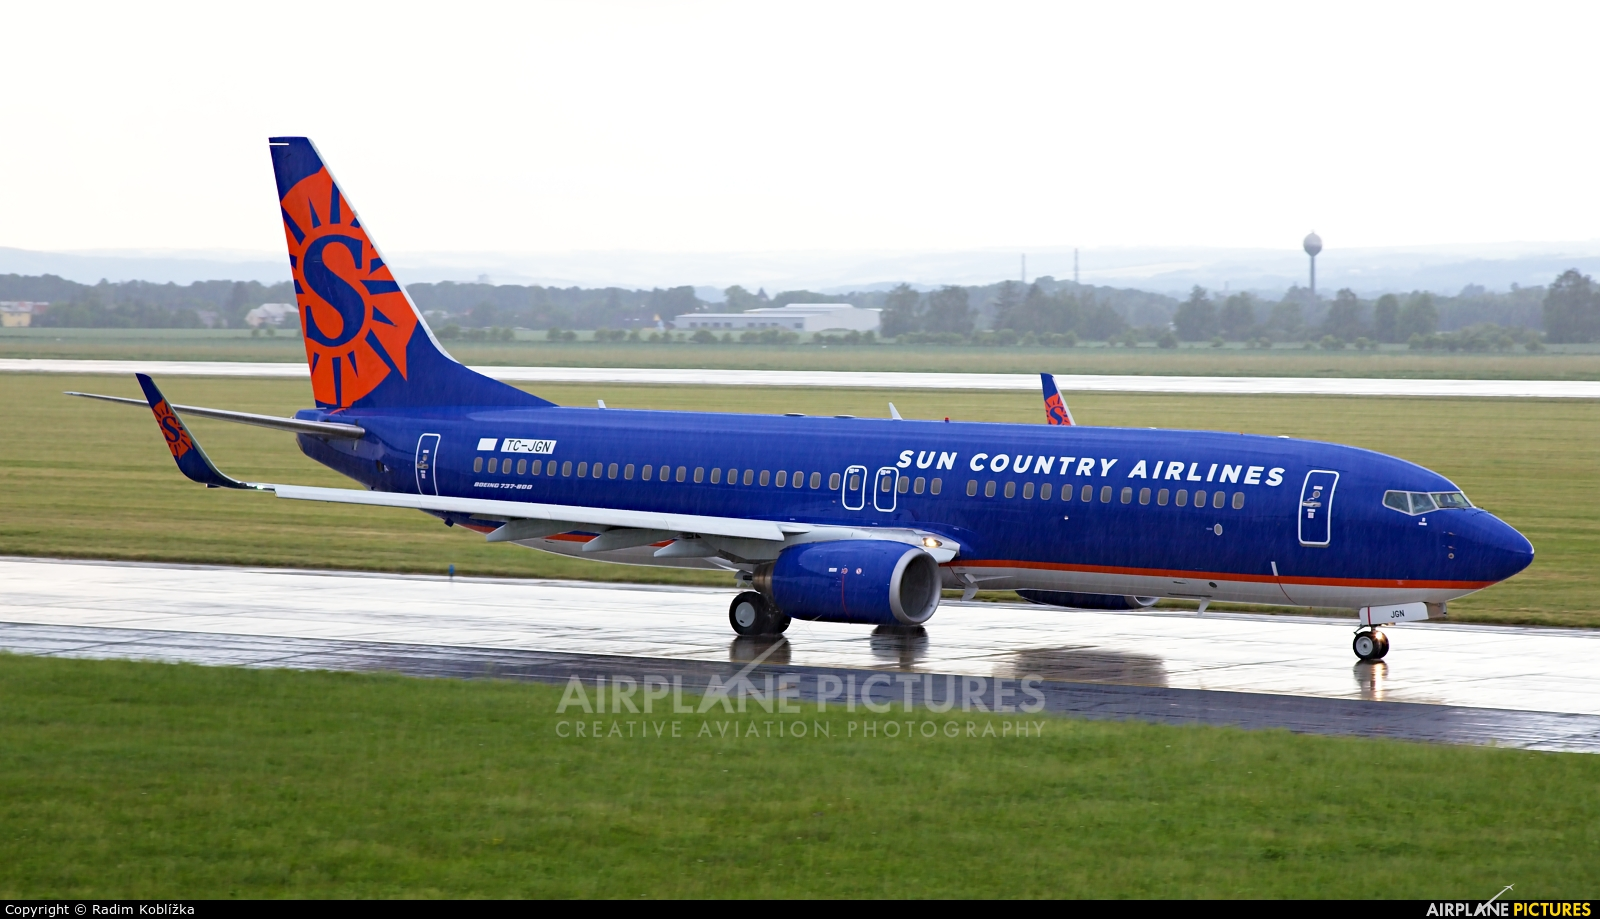 Sun Country Airlines TC-JGN aircraft at Ostrava Mošnov